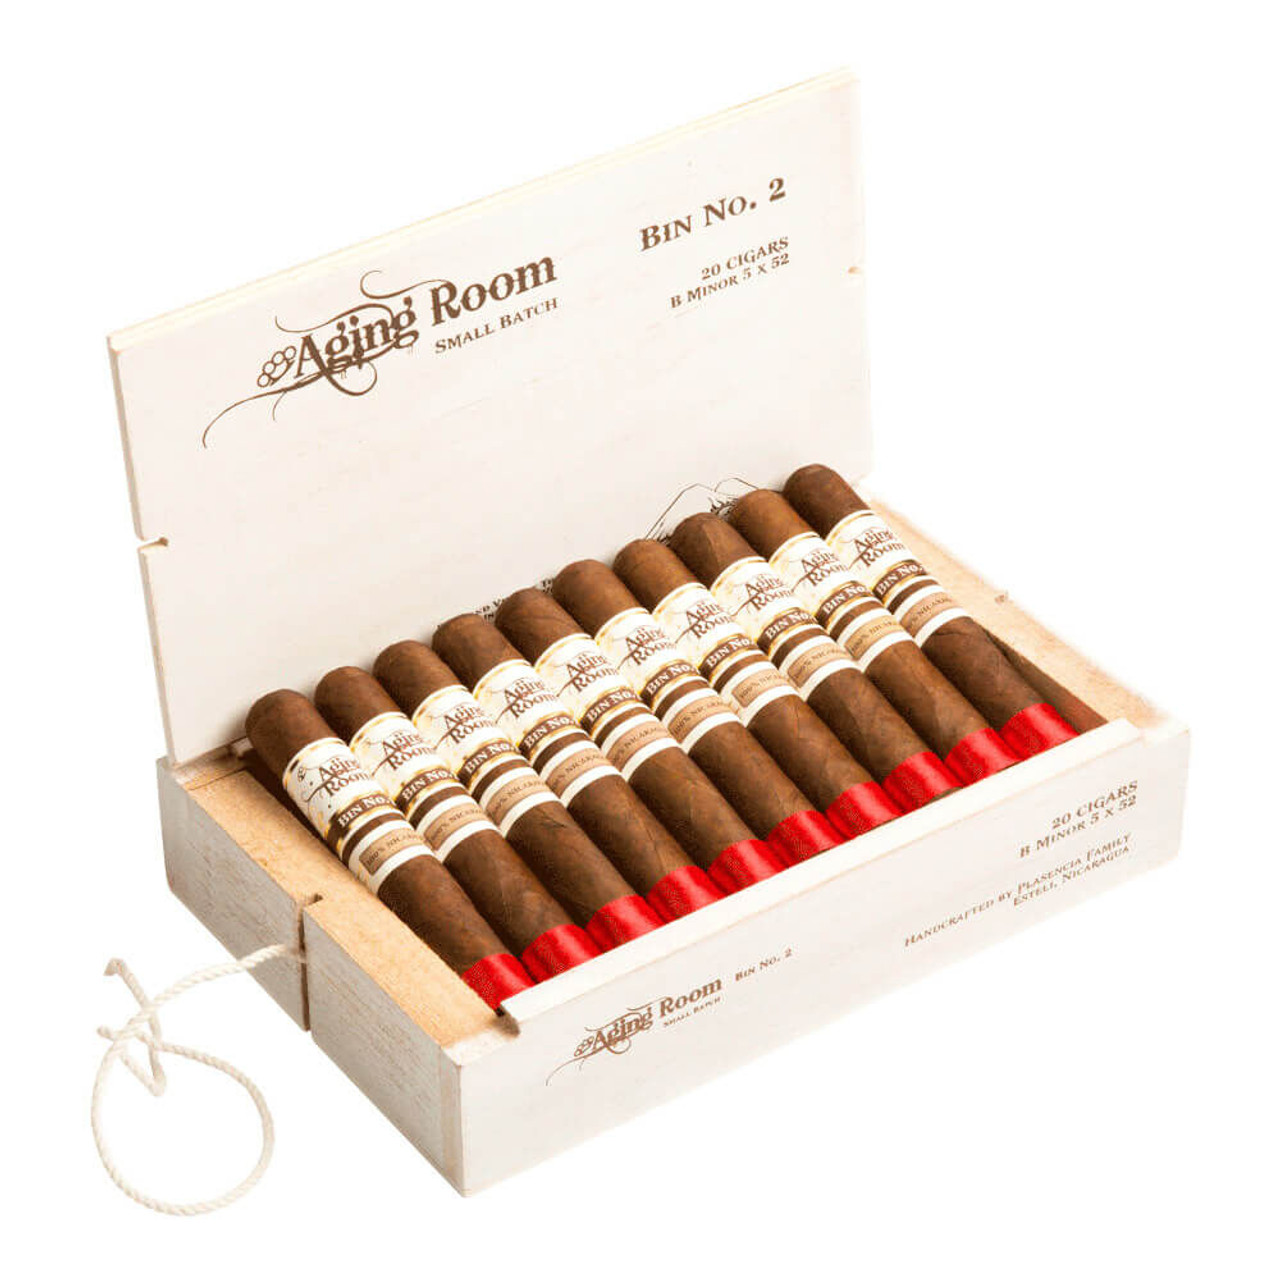 Aging Room Bin No. 2 B Minor Cigars - 5.0 x 52 (Box of 20)